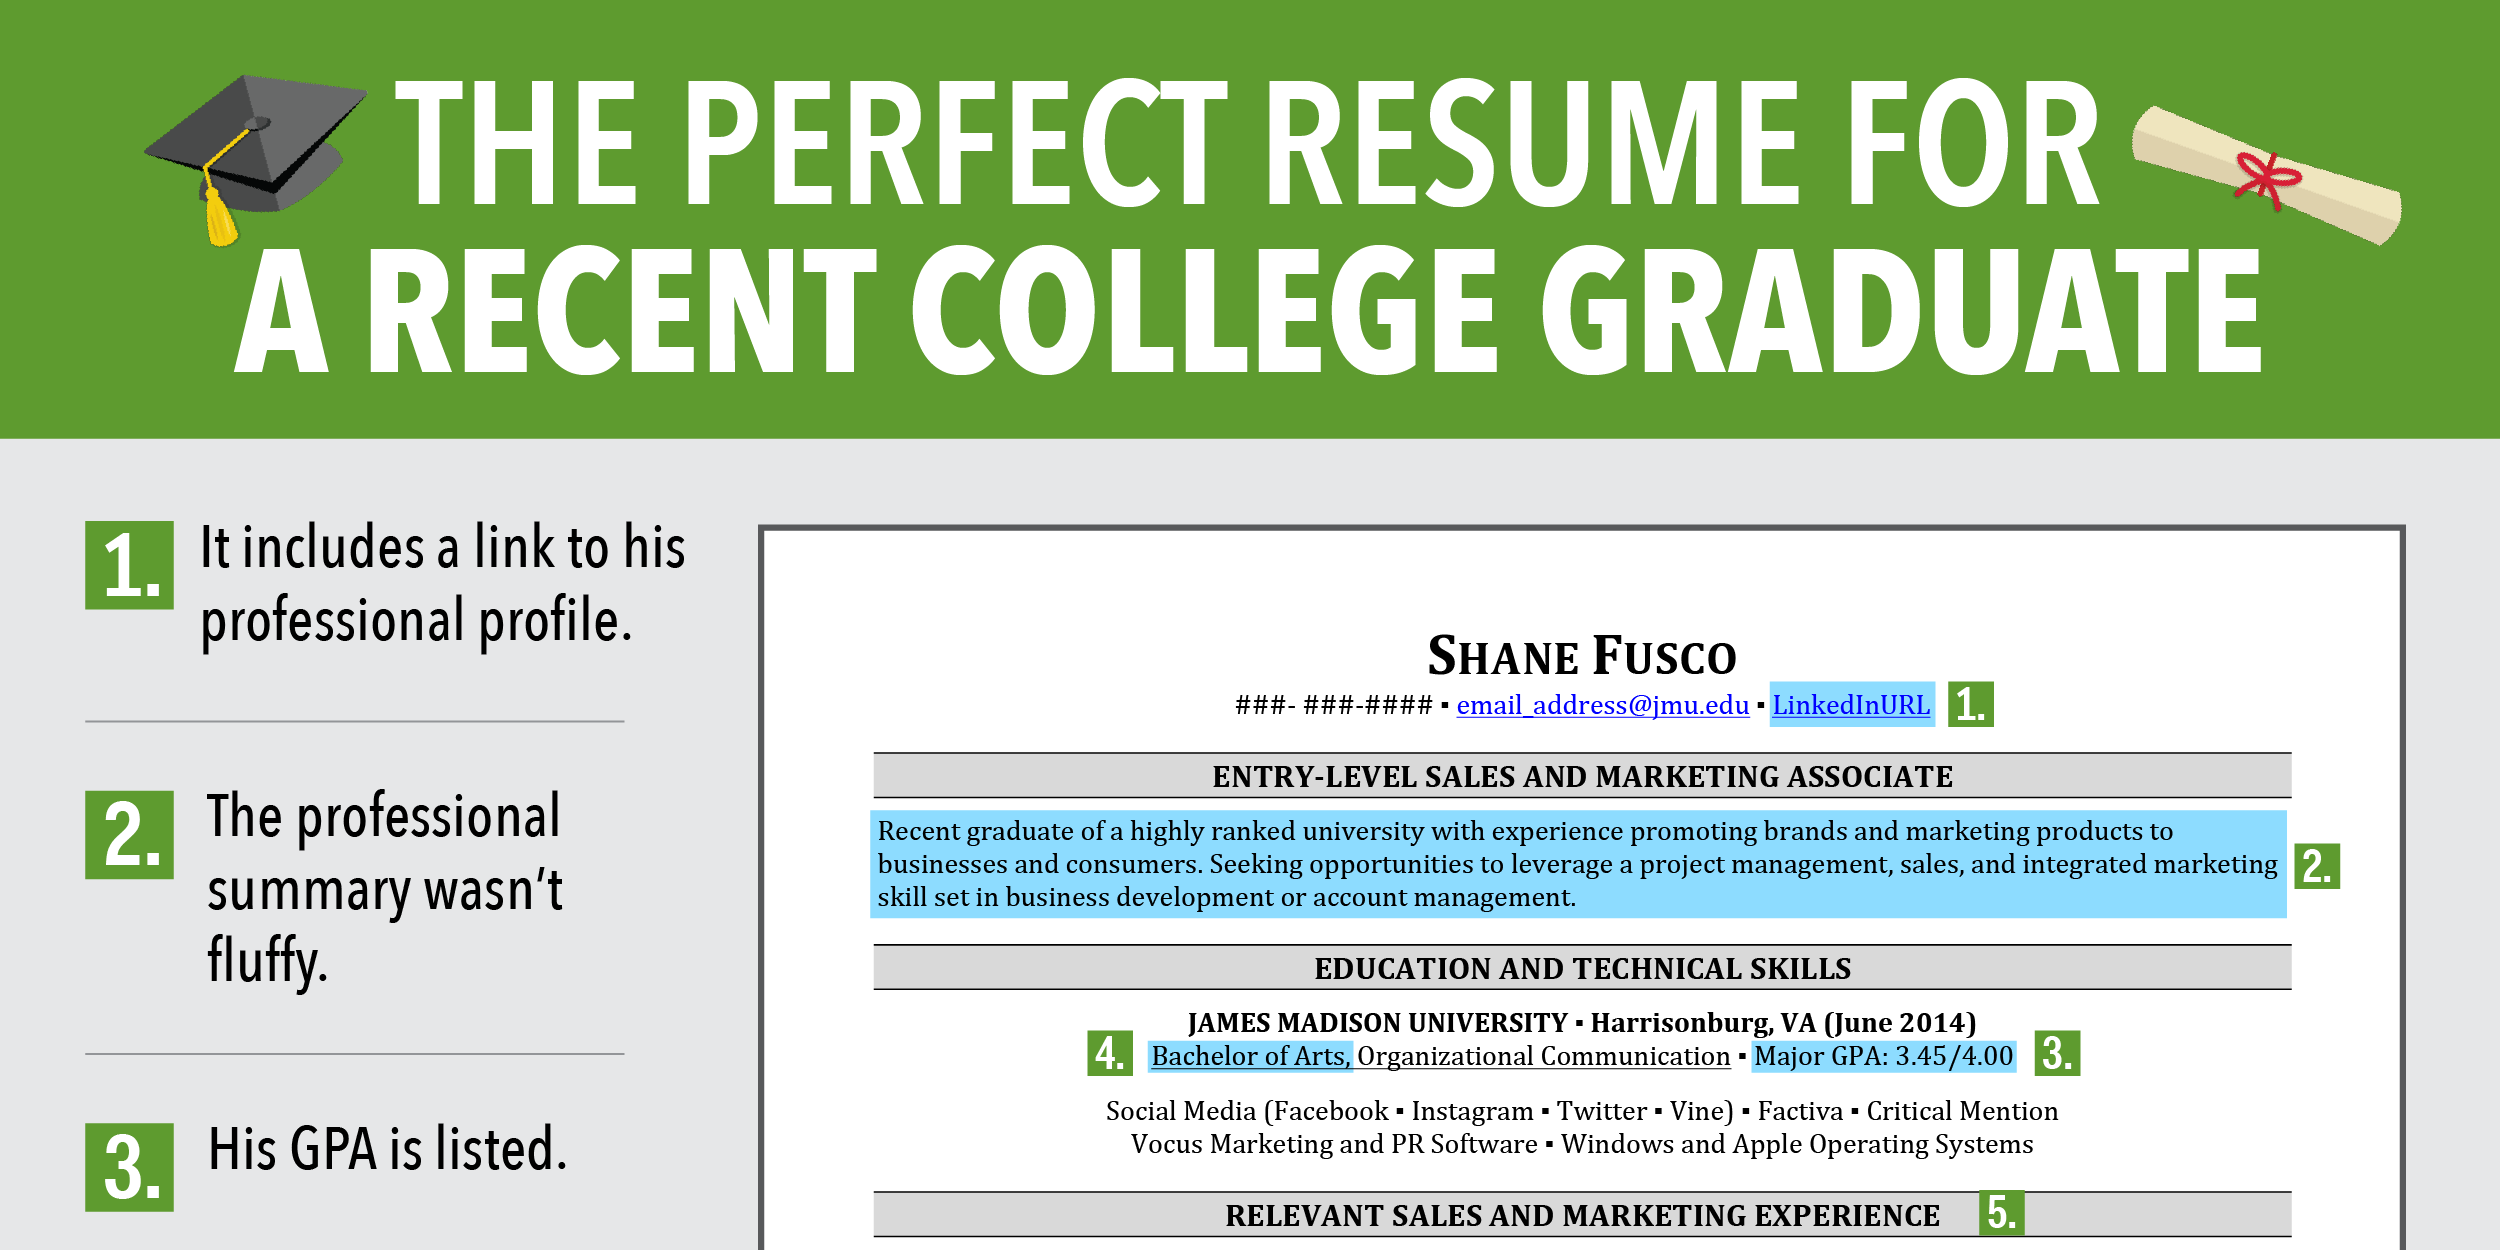 Reasons This Is An Excellent Resume For A Recent College Graduate